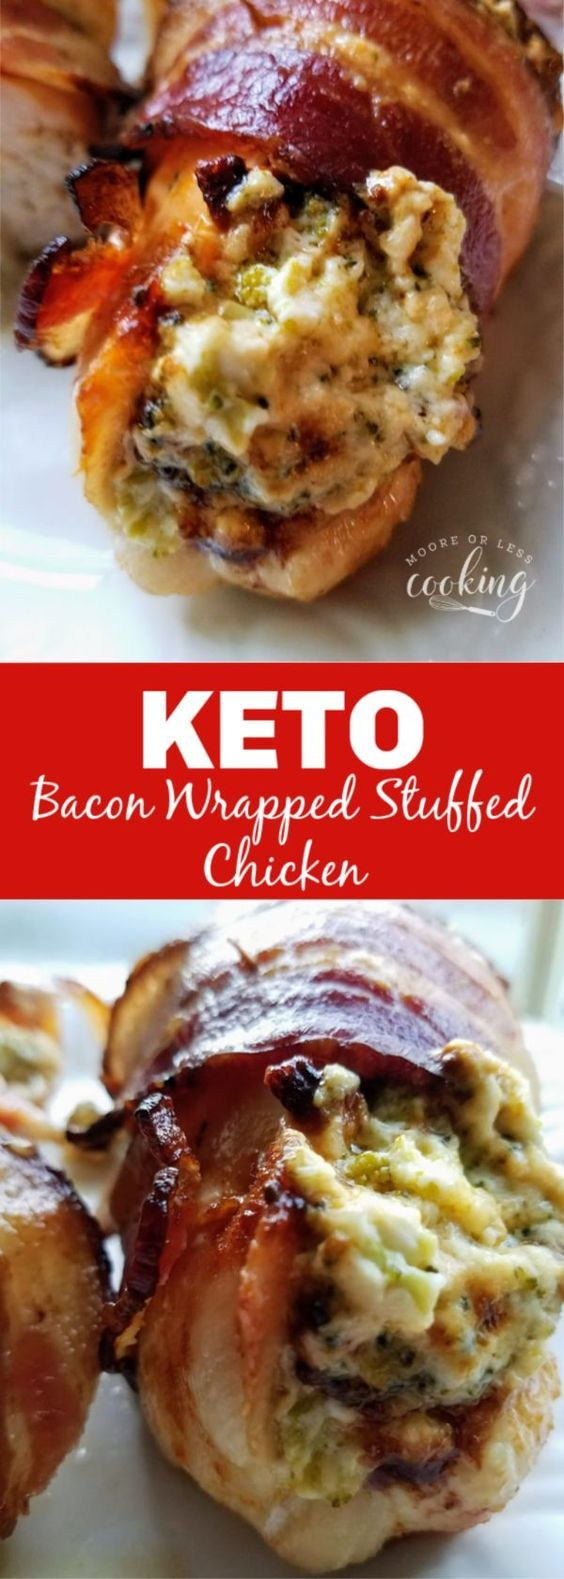 #ad Incredibly moist and flavorful Keto Stuffed Bacon Wrapped Chicken. Broccoli …